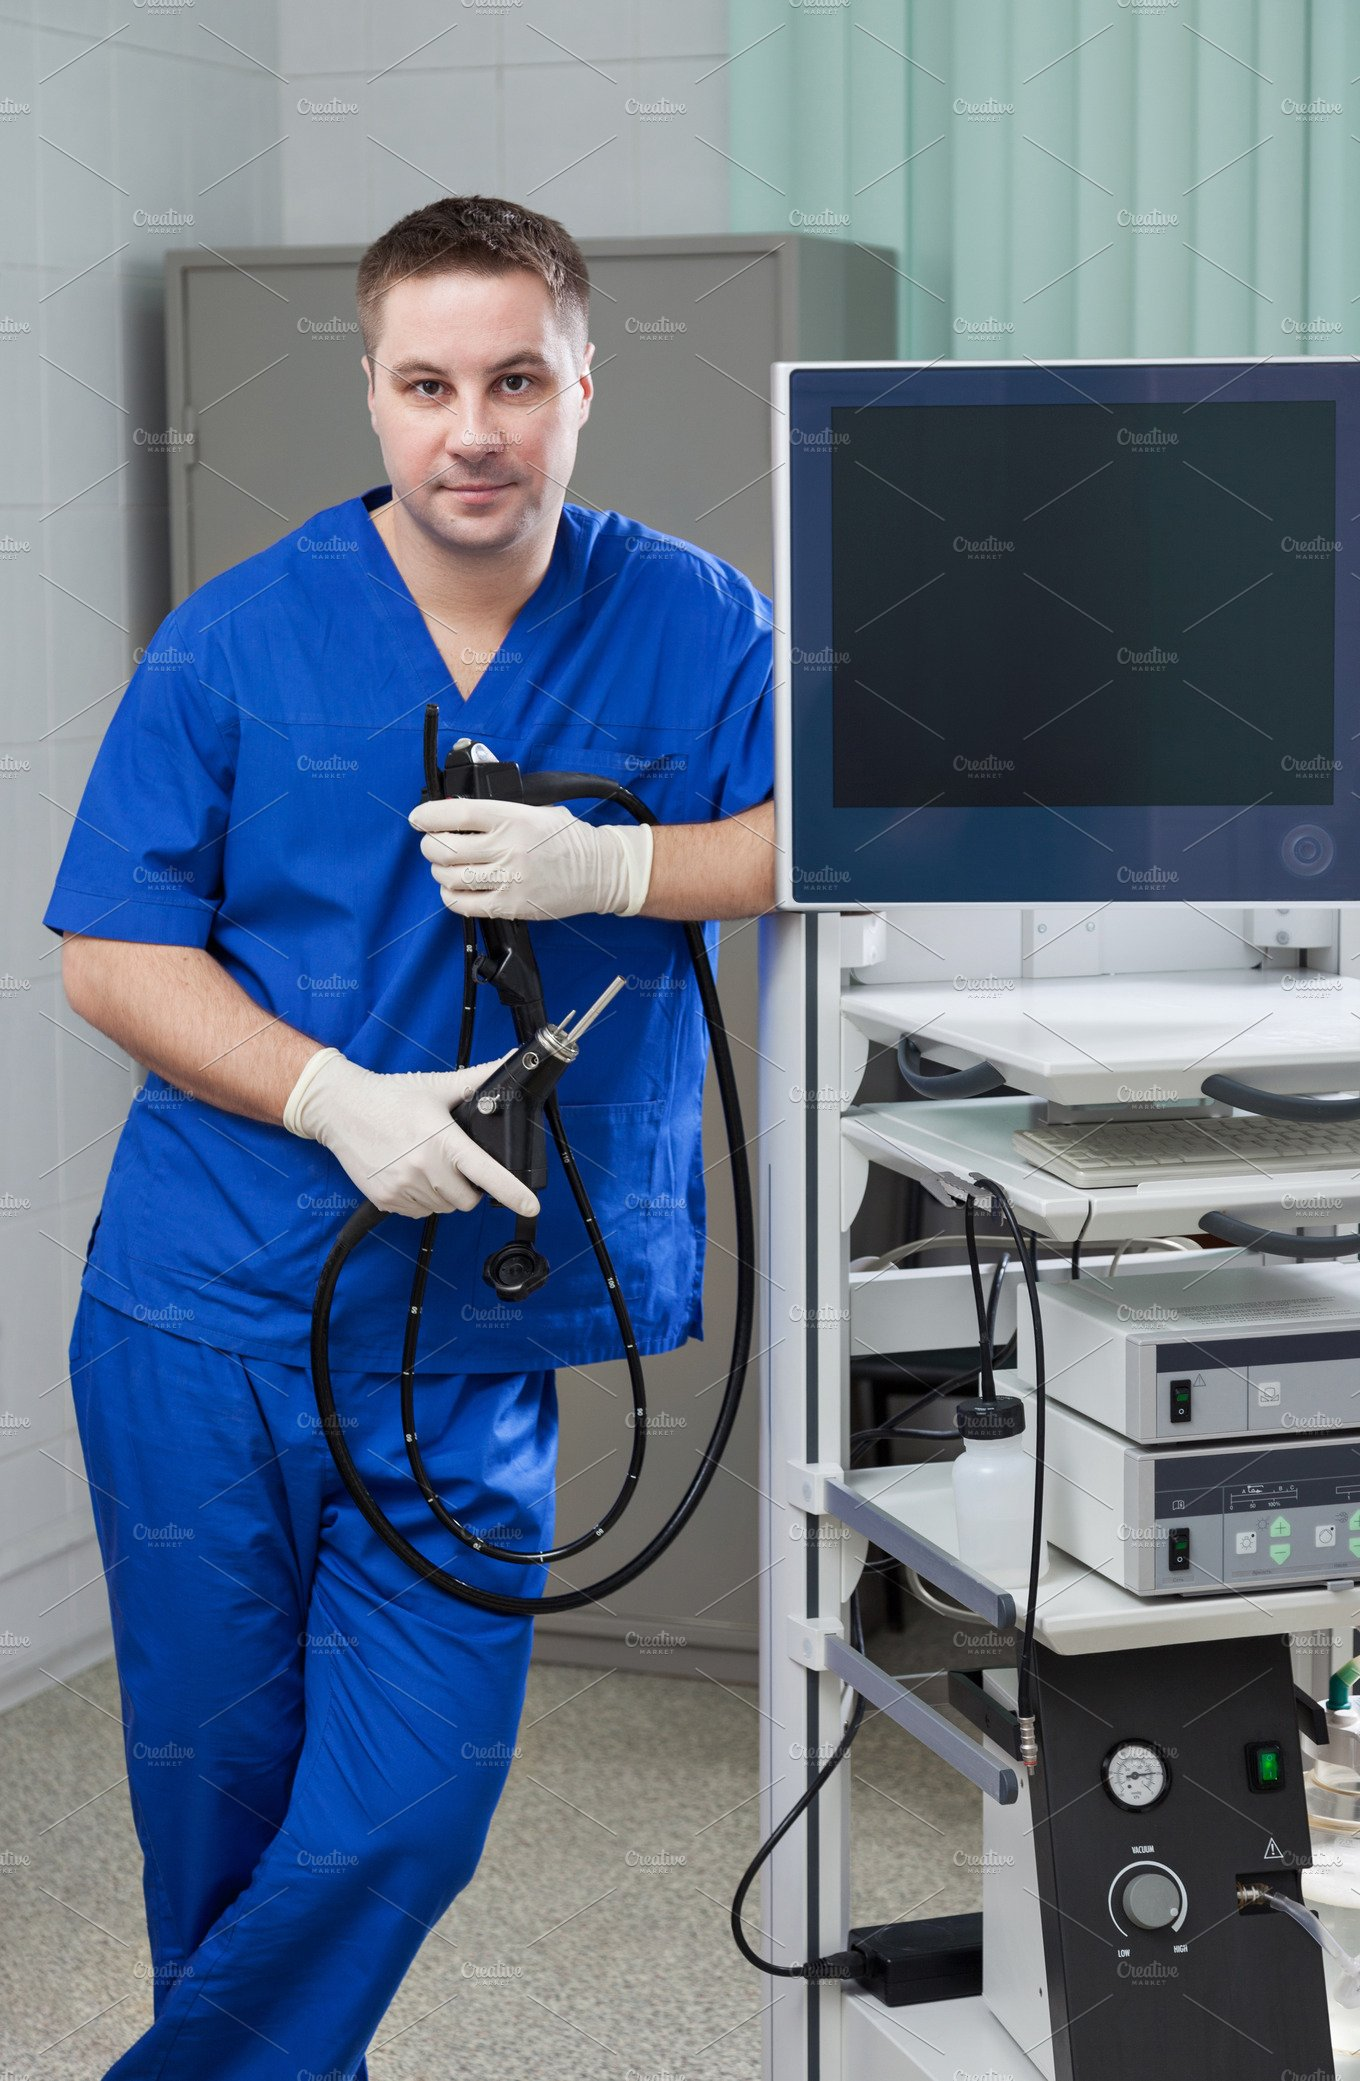 Endoscopic Room: Male Doctor In Endoscopic Room